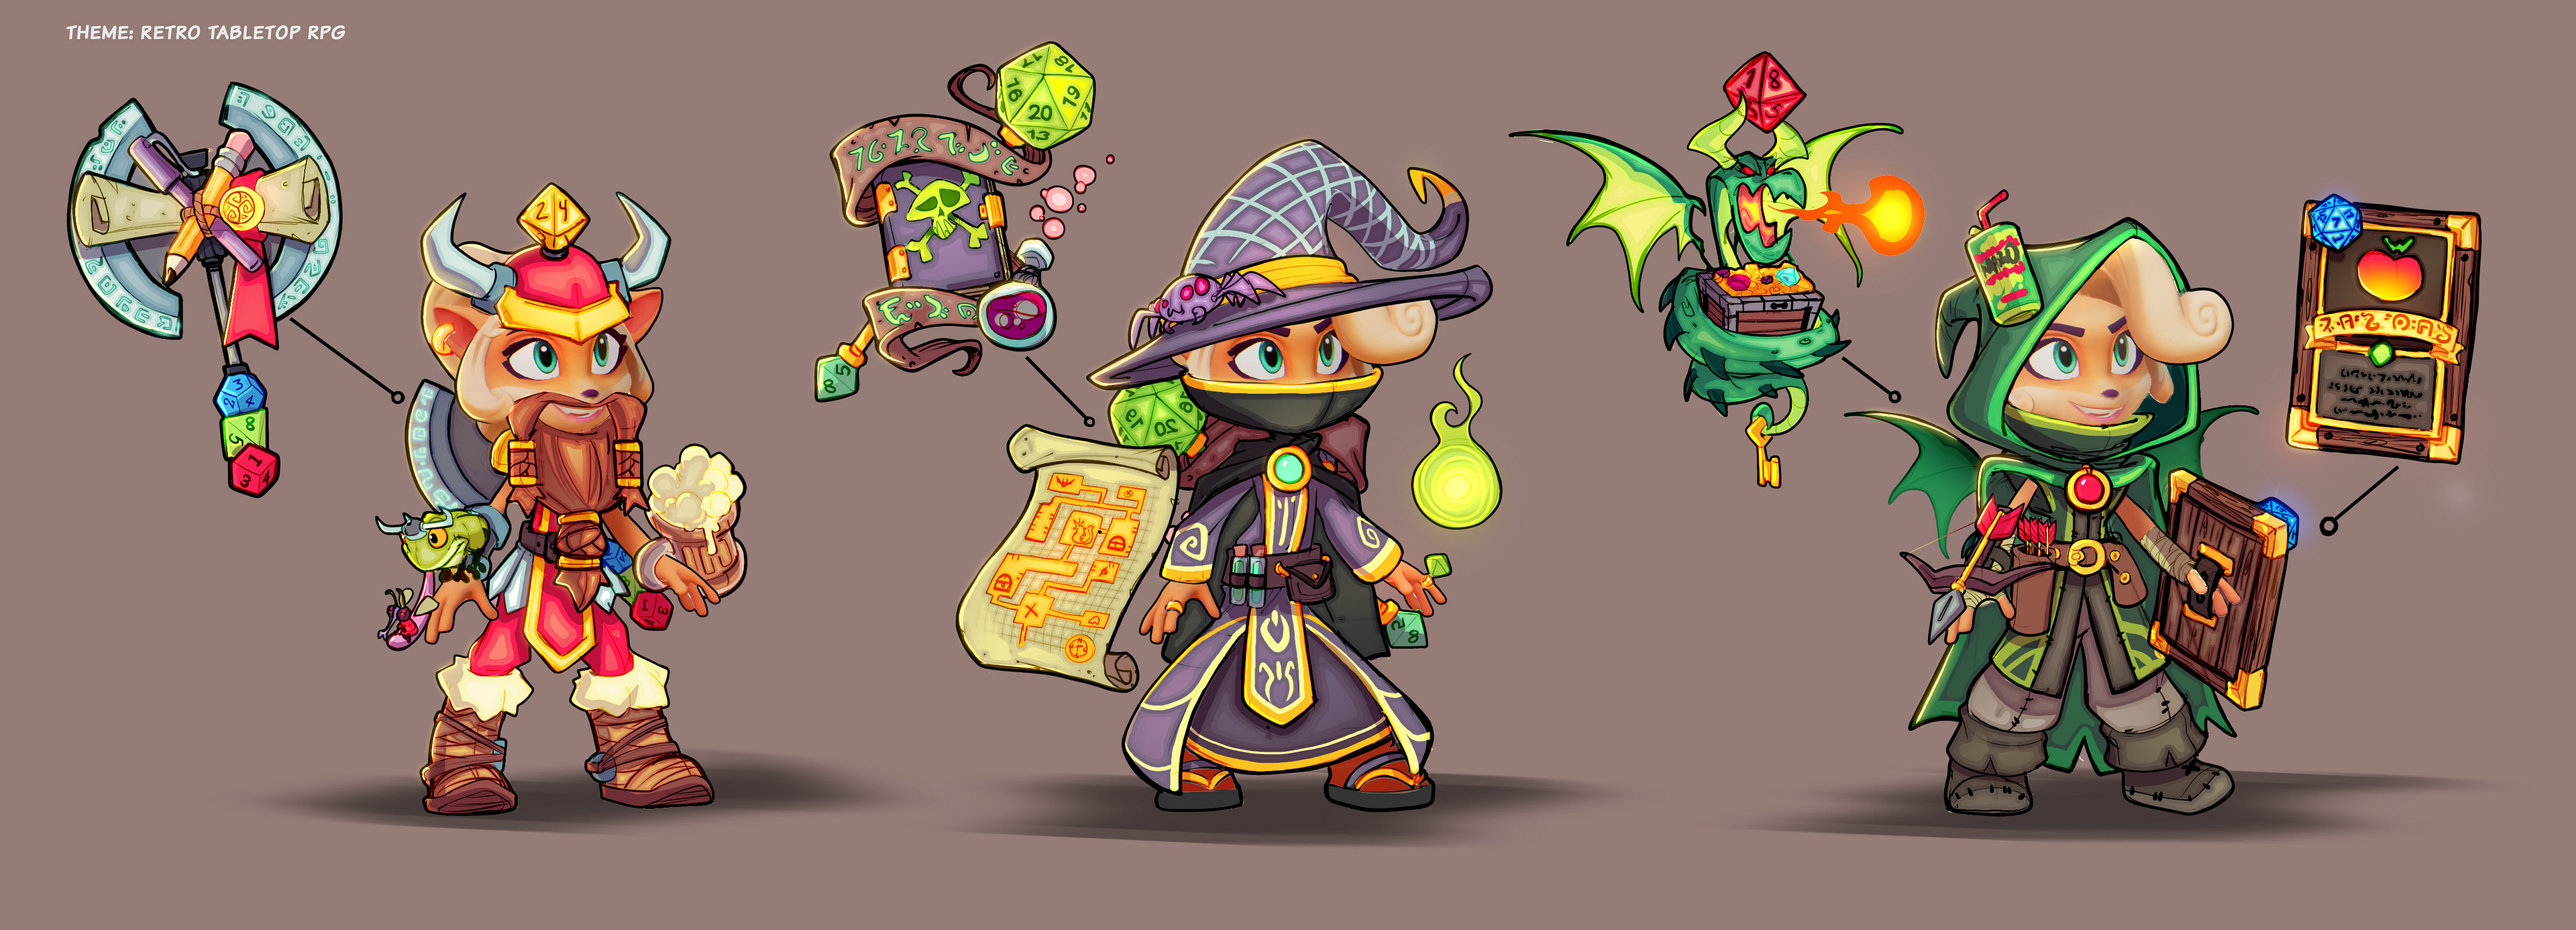 D&D styled skin ideations. I figured Coco must play tabletop games when she's away from the laptop.